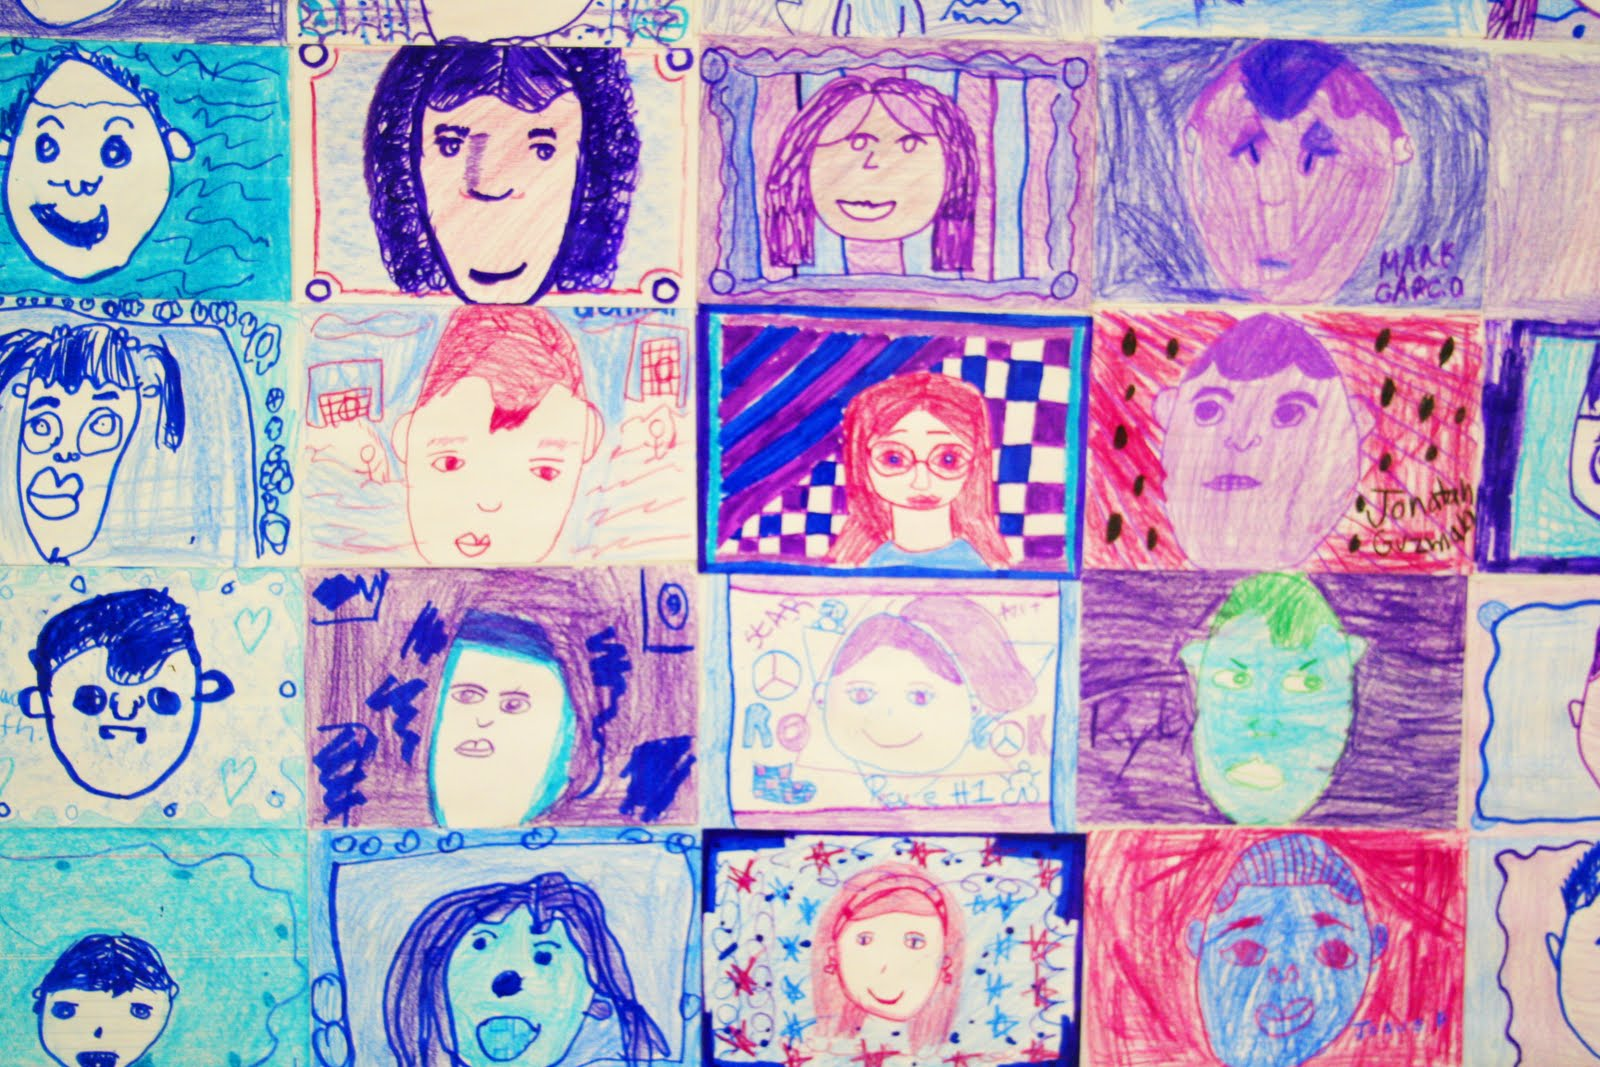 Color wheel art lesson for second grade -  Middle Then Nose Half Way B W Eyes And Chin And Lips Half Way B W Nose And Chin We Lookes At Many Different Hairstyles And How To Draw Them From The